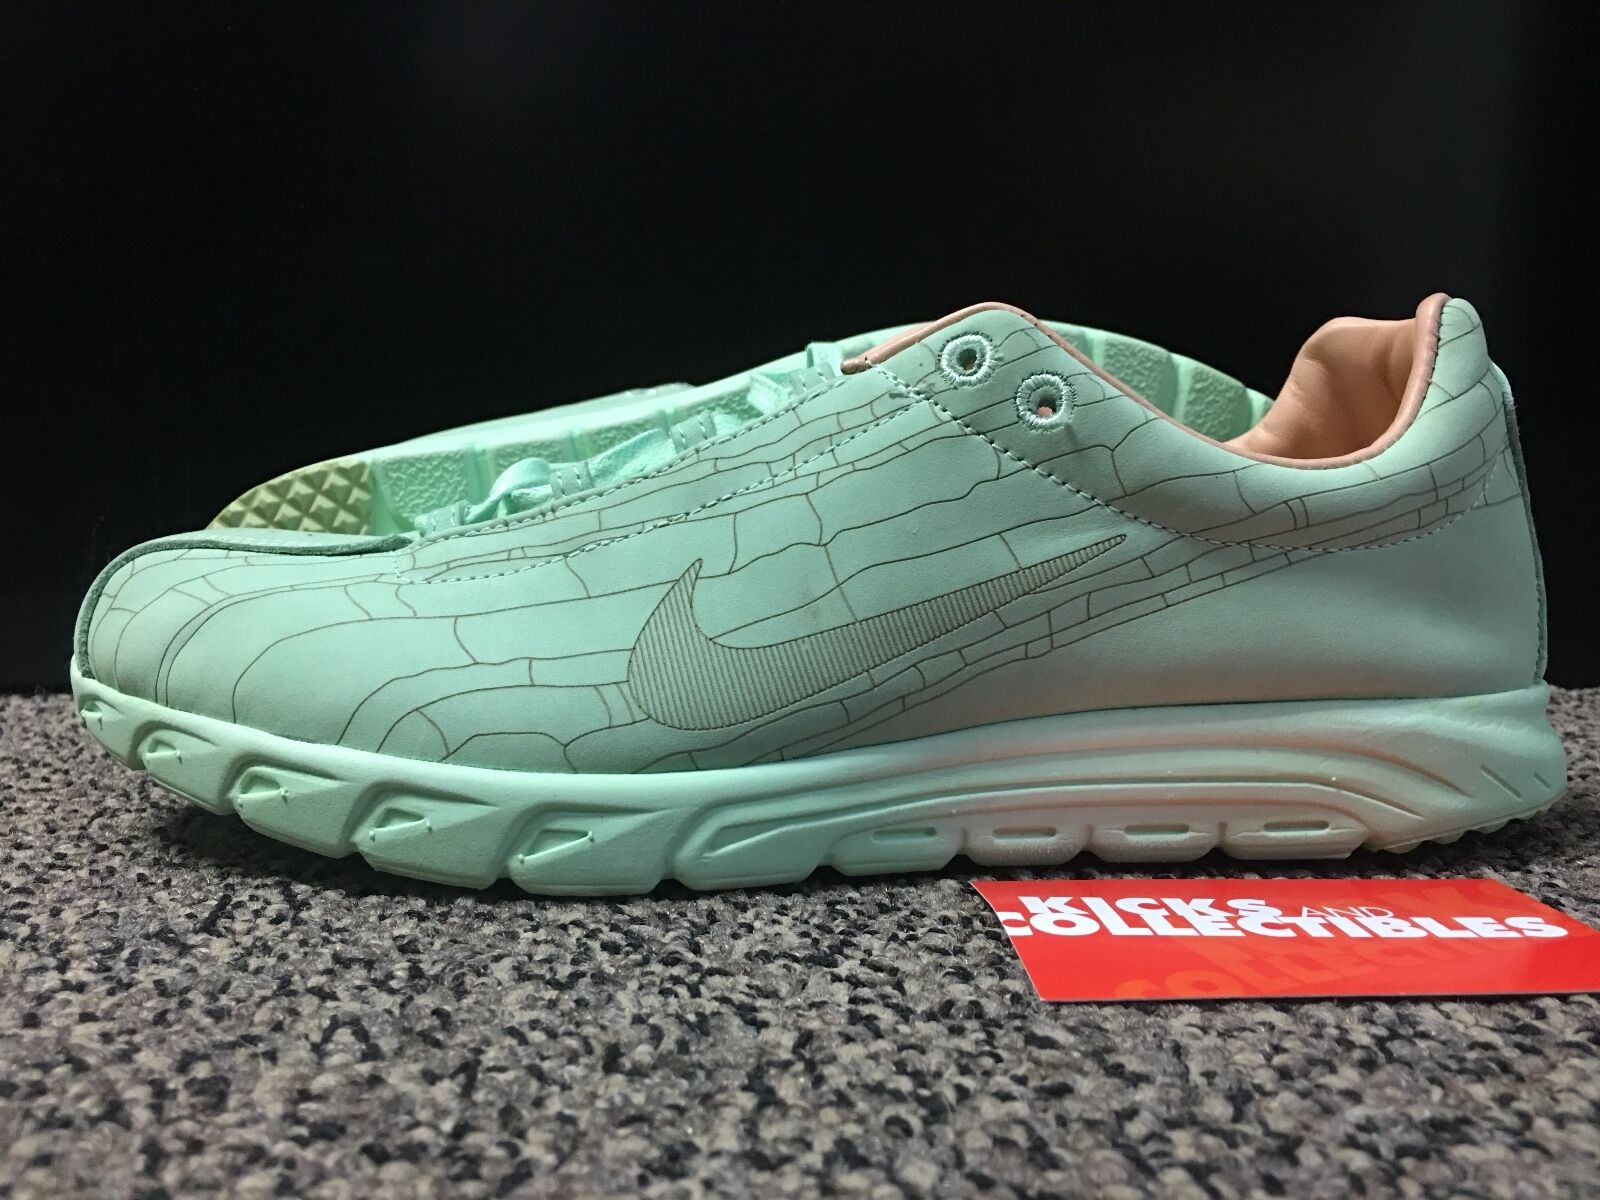 NIKE Mayfly Premium PRM NSW 10 515003 300 FRESH MINT max air ultra light best-selling model of the brand